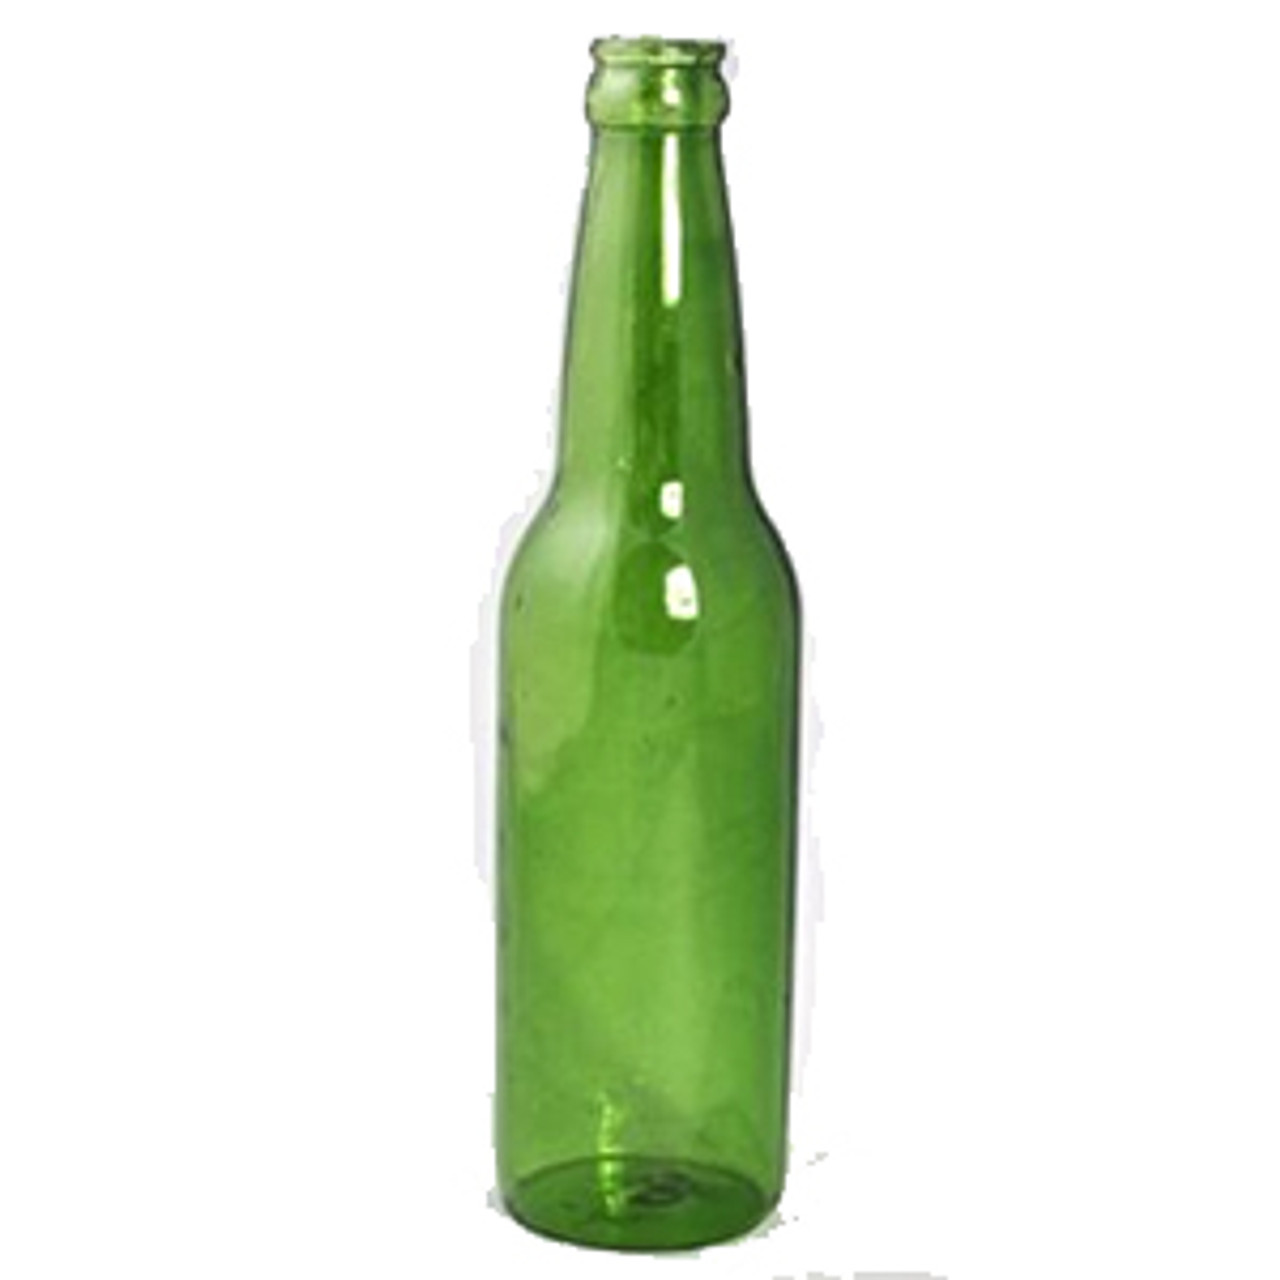 Beer Bottle - Green